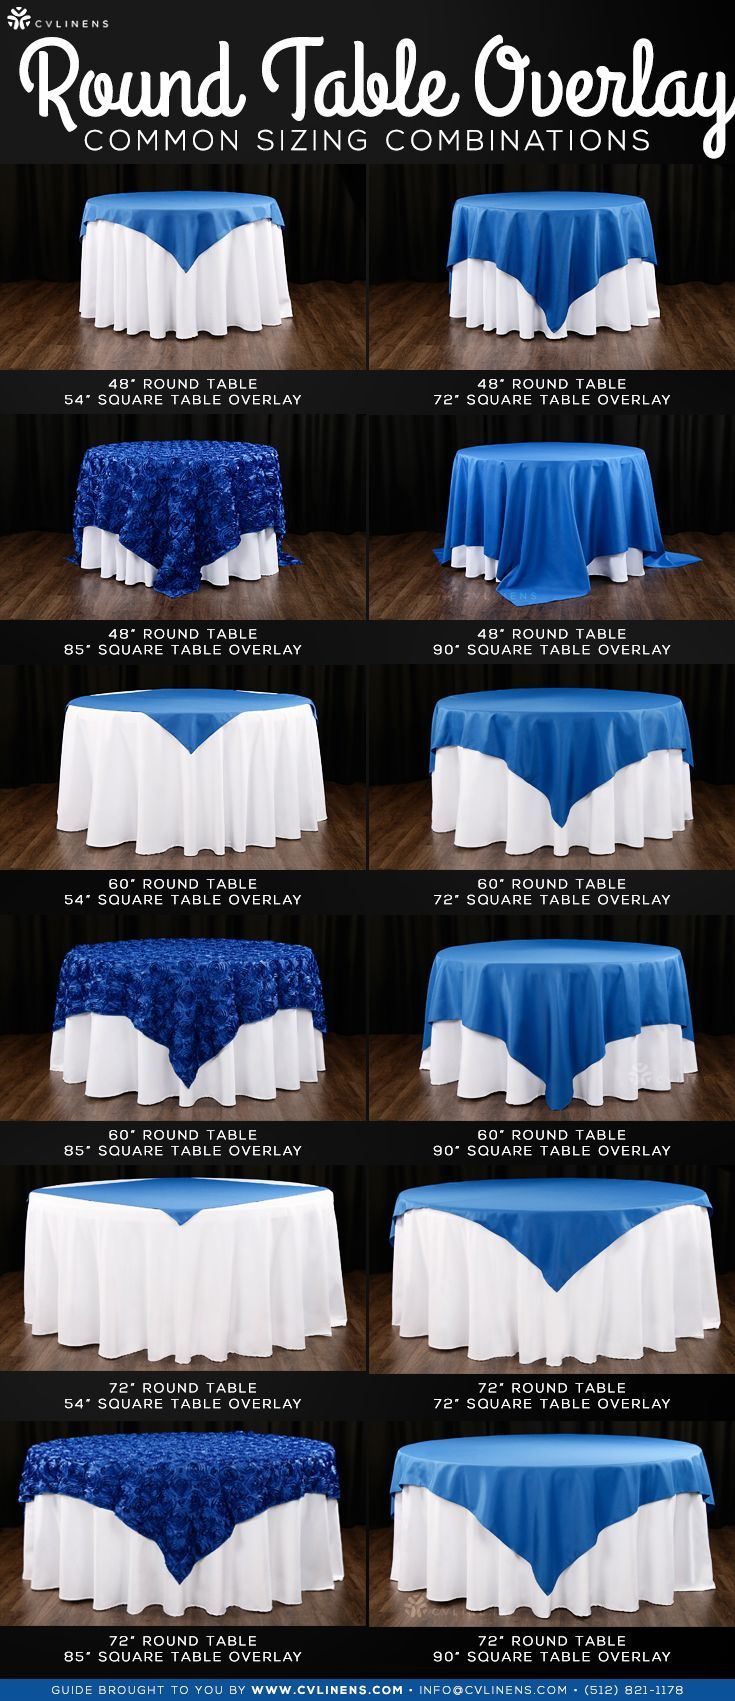 Round Table Overlay Sizing Combinations Wedding Table Settings